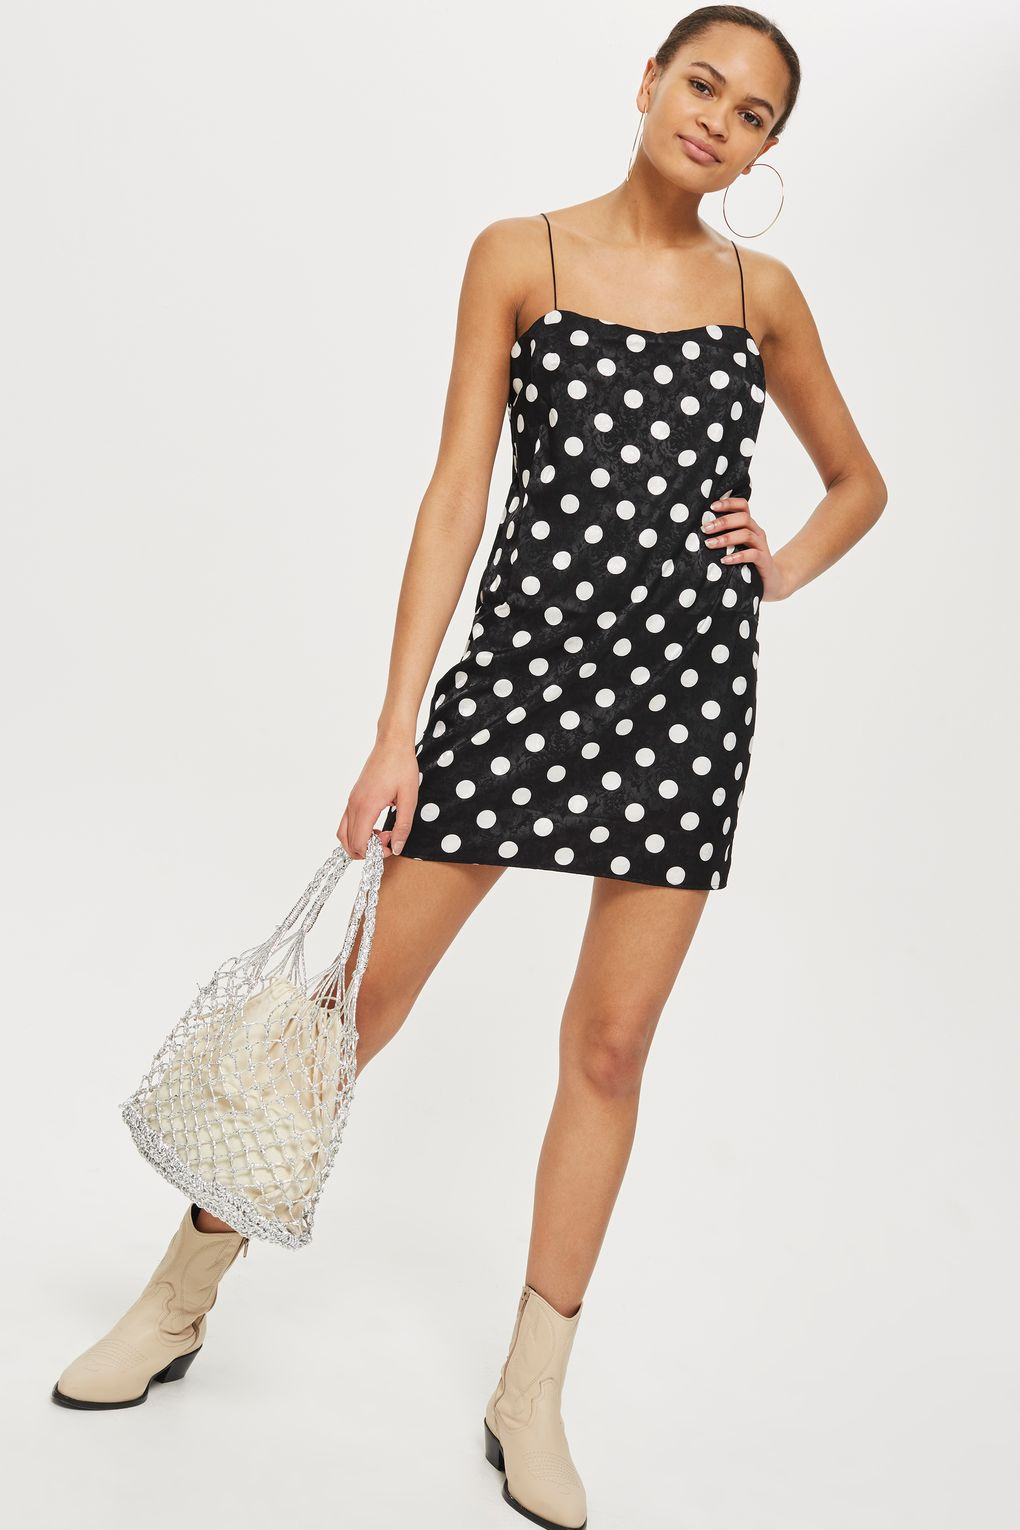 Square Neck Slip Dress Topshop.jpg